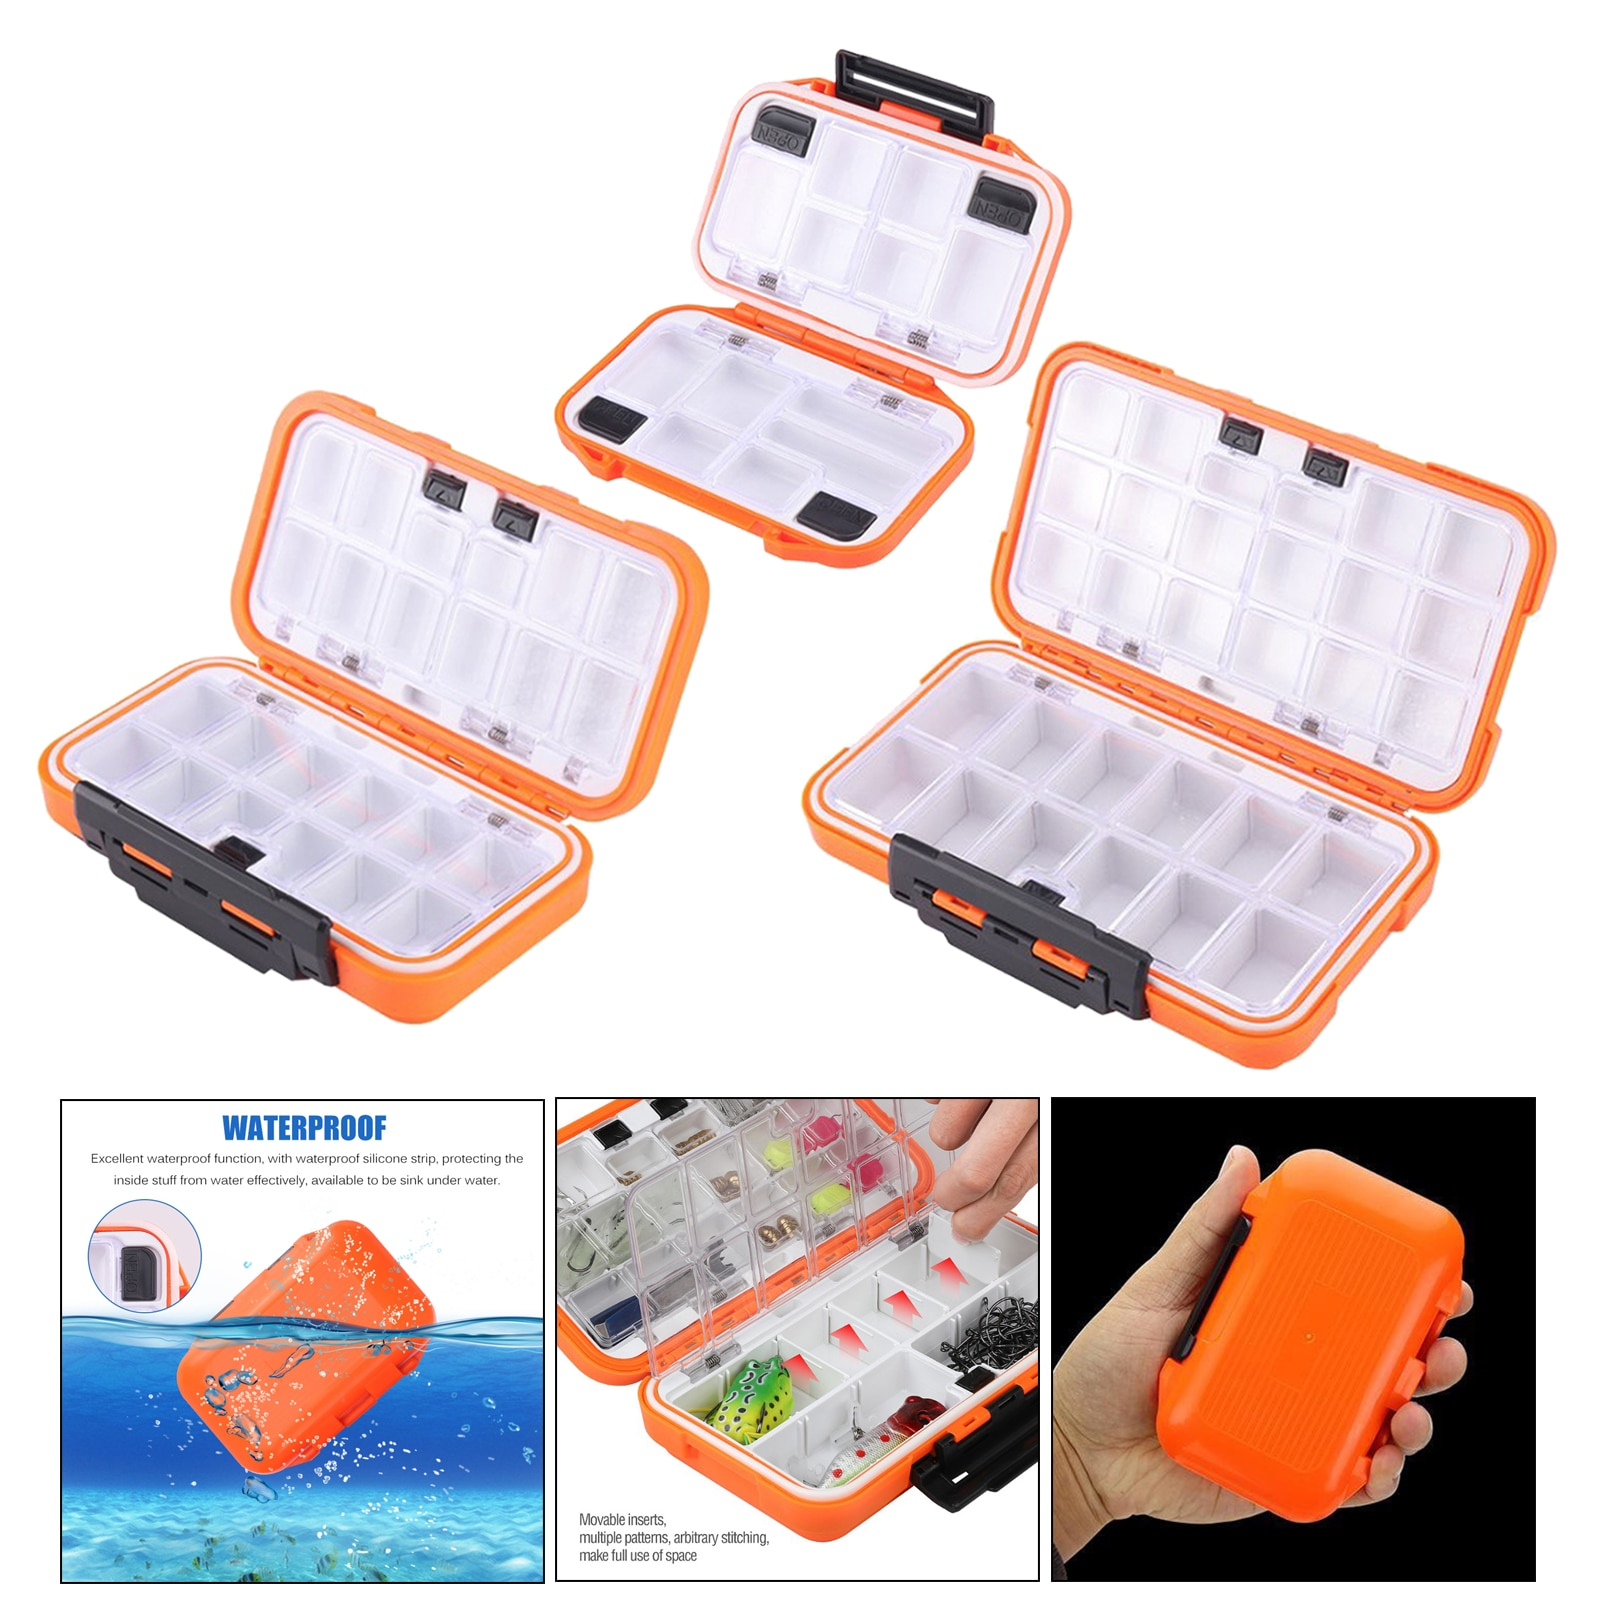 Sealed Waterproof Fishing Tackle Tray ABS Plastic Swivel Snap Lure Storage Box